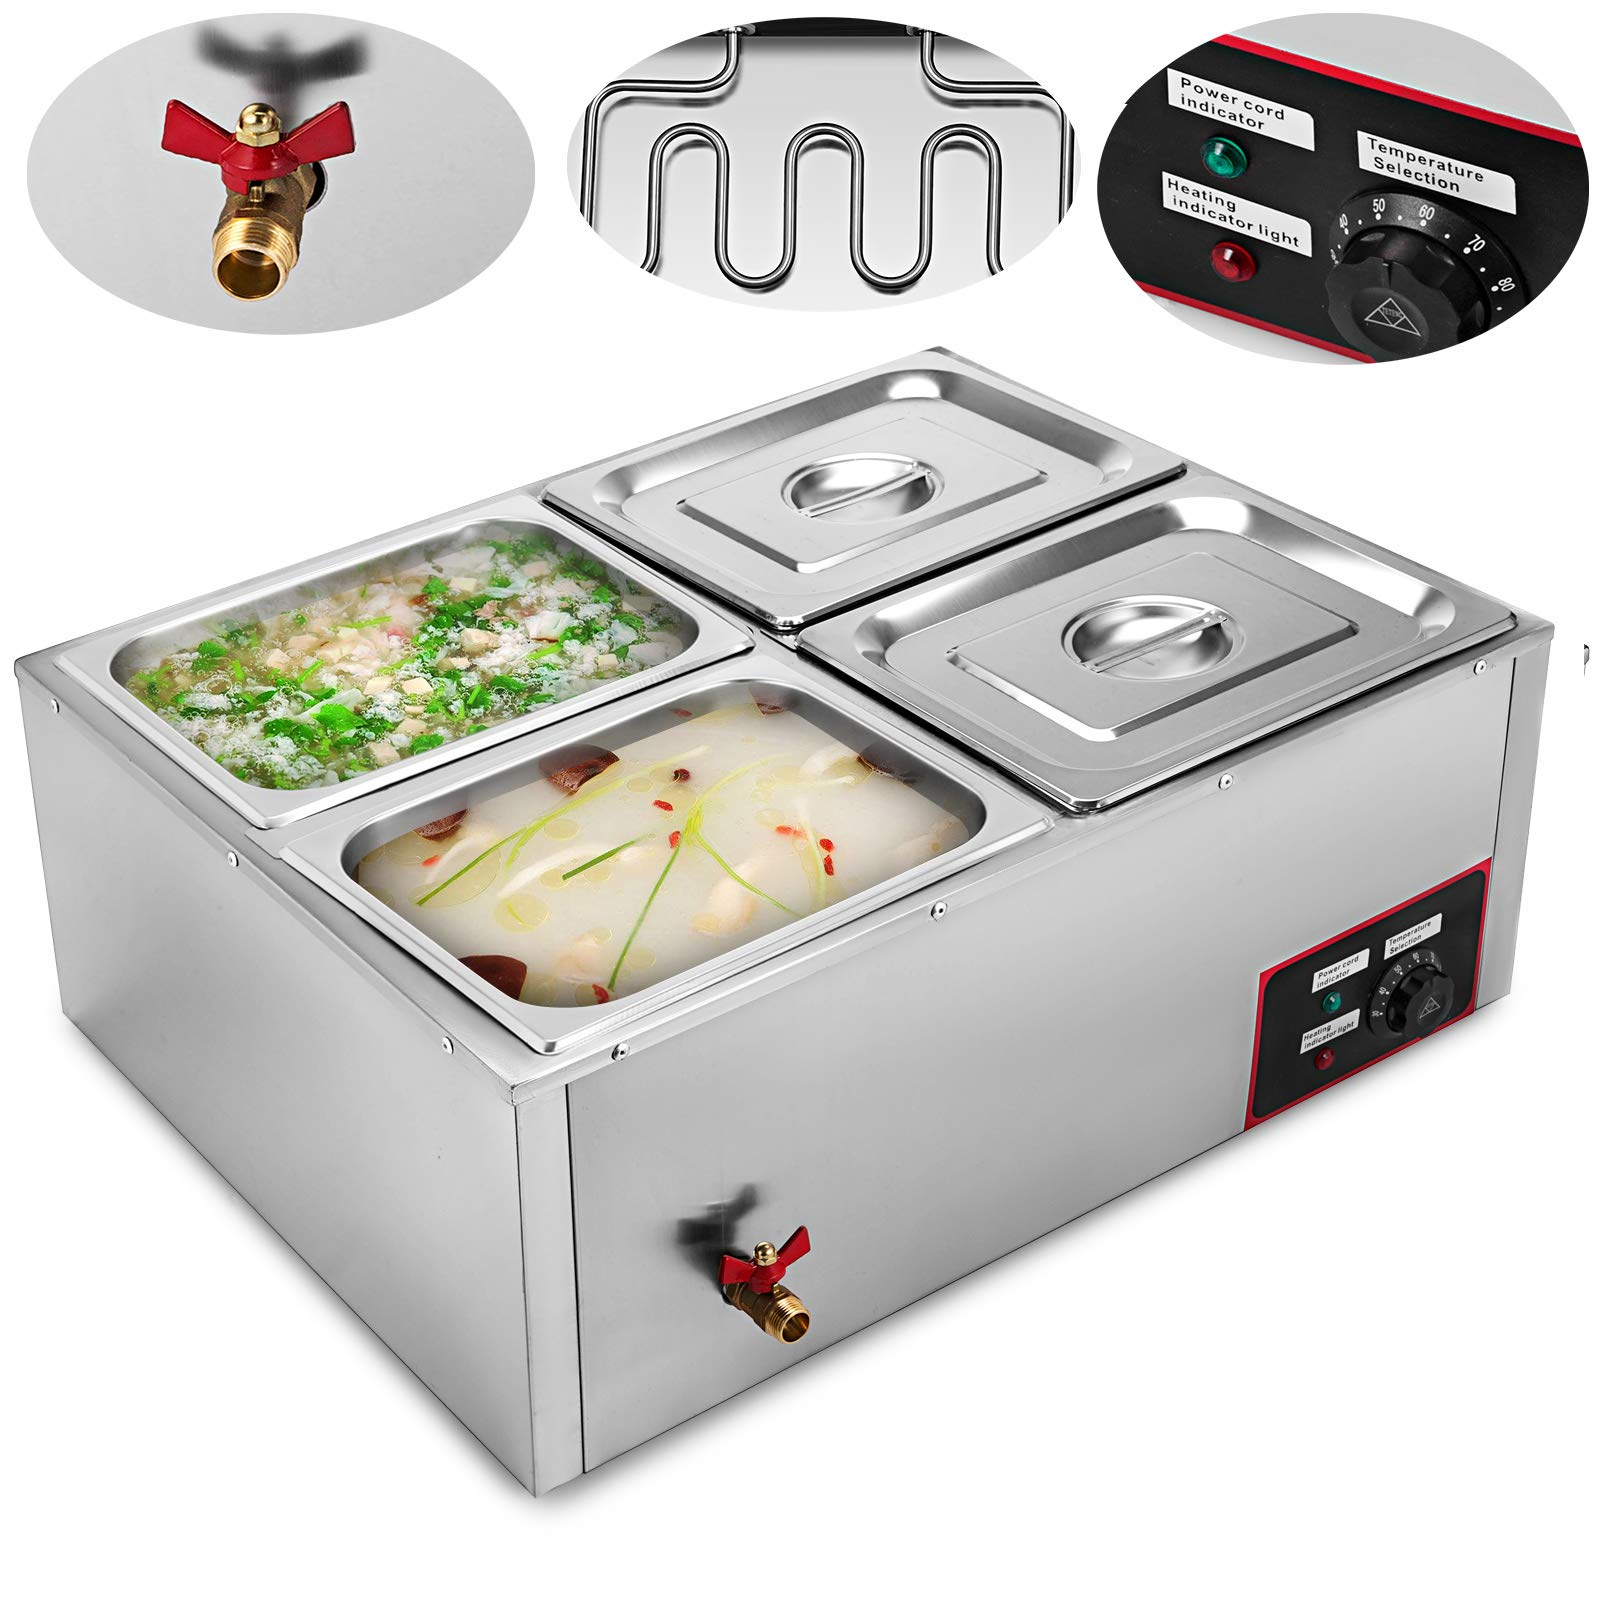 VEVOR Commercial Food Warmer 110V Electric Food Warmer 850W Stainless Steel Bain Marie Buffet Food Warmer Steam Table for Catering and Restaurants (4-Pan) by VEVOR